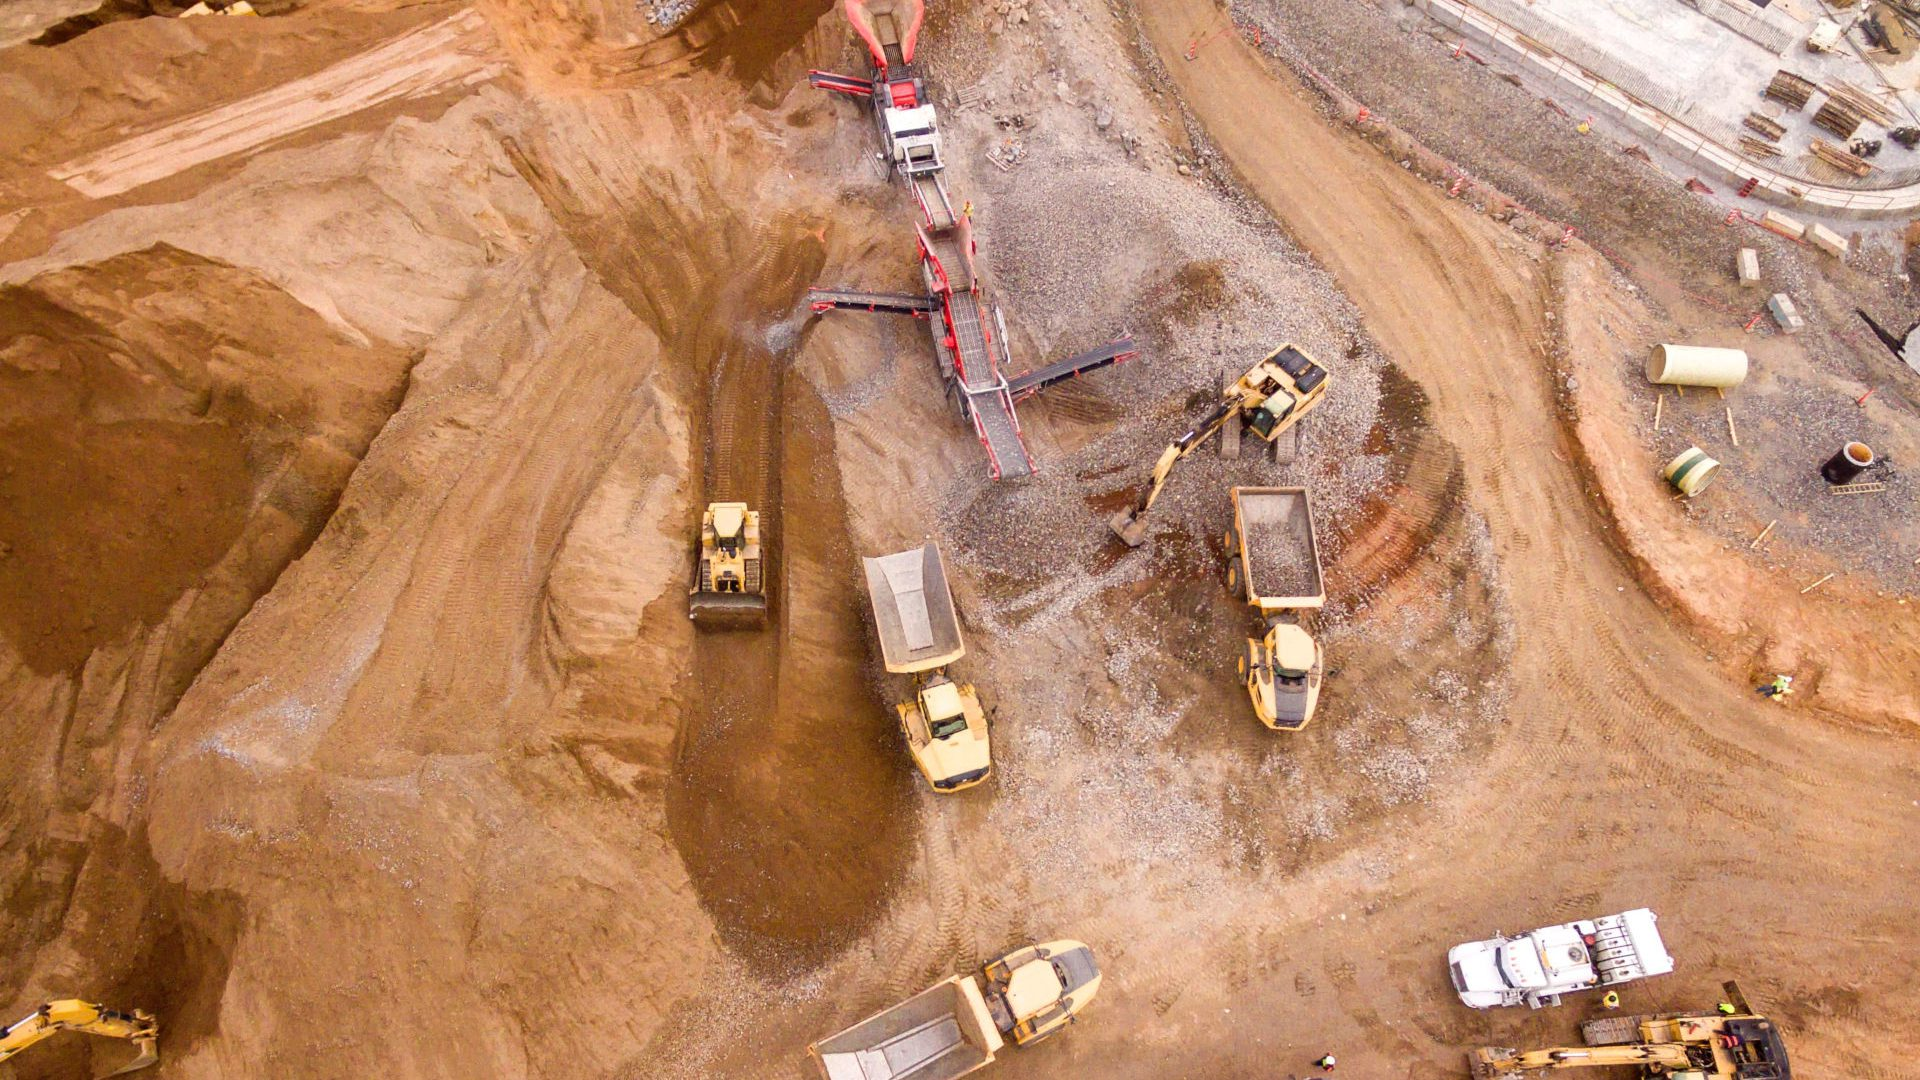 Earthworks industry and mining industry